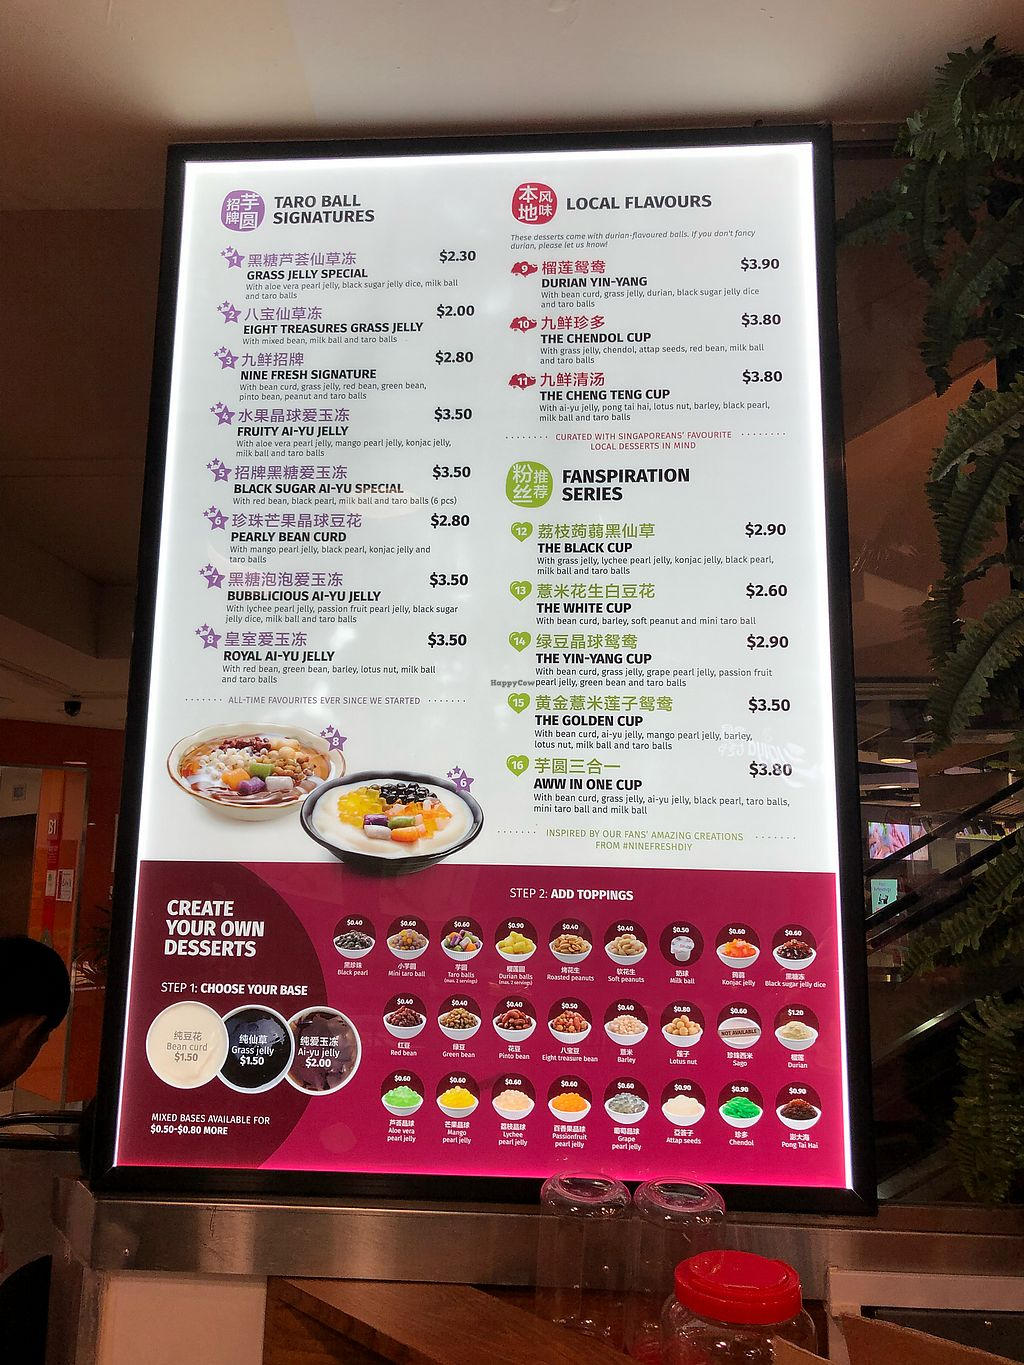 """Photo of Nine Fresh - Hougang Mall  by <a href=""""/members/profile/CherylQuincy"""">CherylQuincy</a> <br/>Menu <br/> March 21, 2018  - <a href='/contact/abuse/image/114329/373825'>Report</a>"""